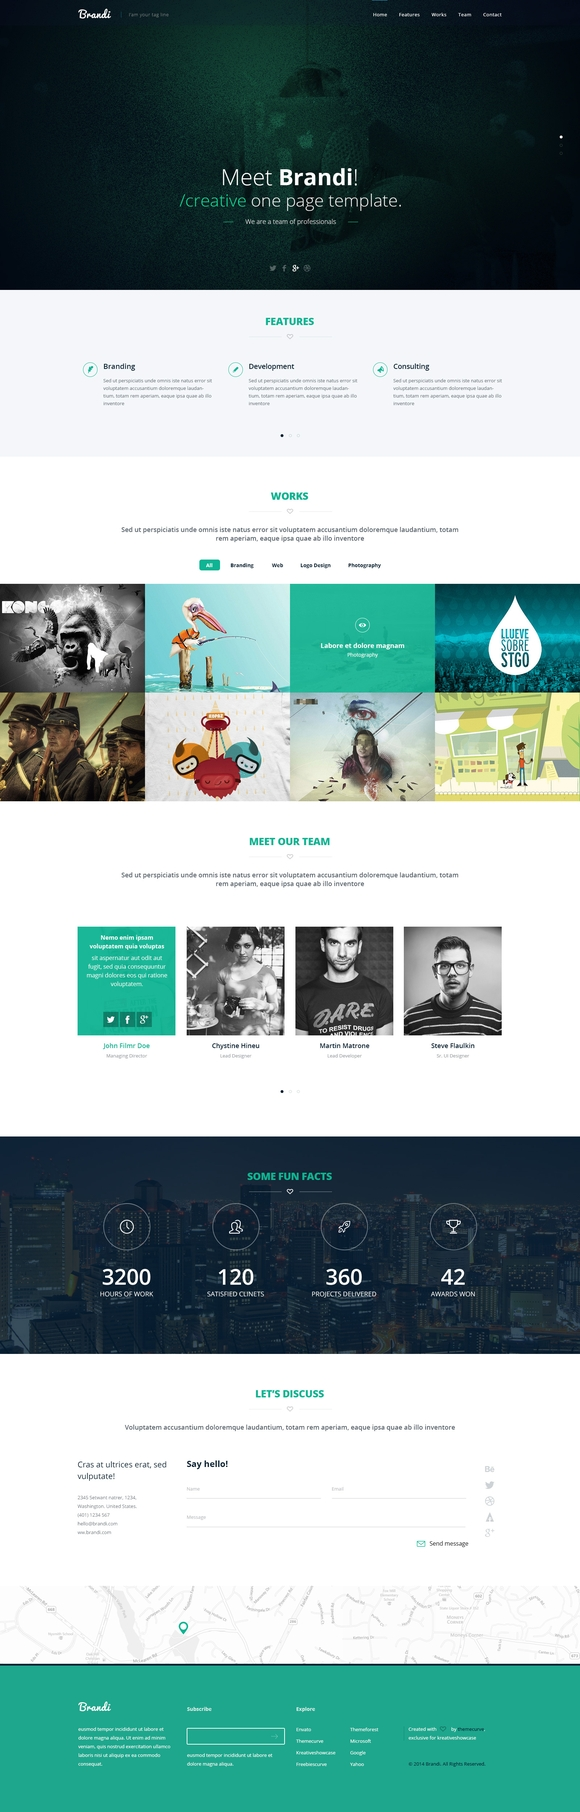 Brandi - free website templates